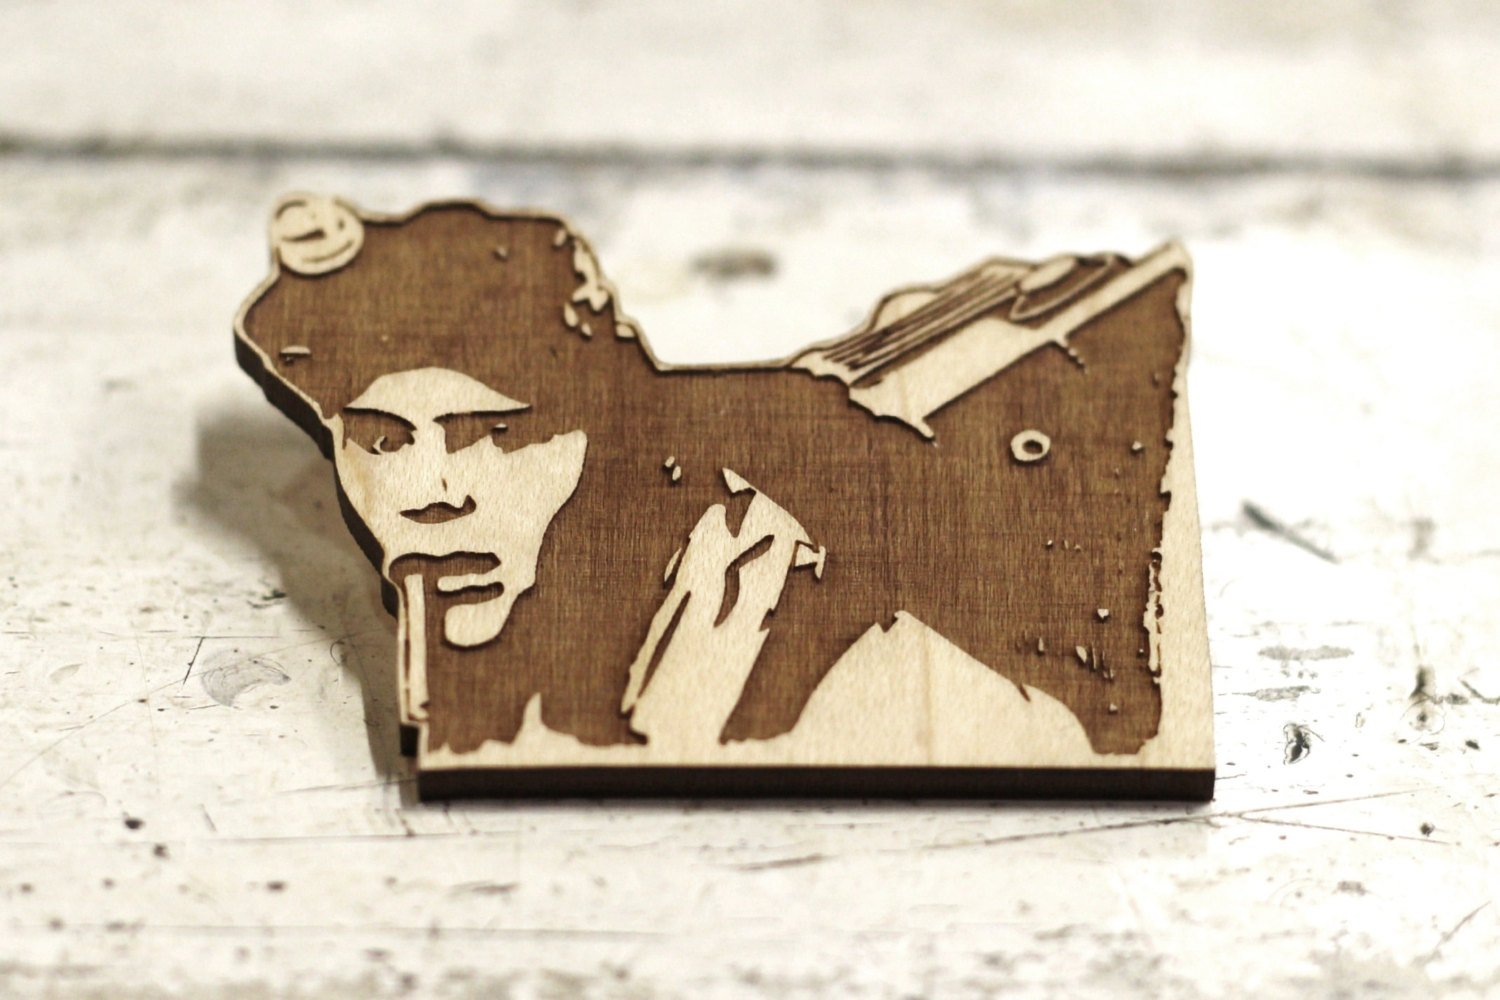 Limited Edition - Dan Aykroyd - Ray Stanz - Ghostbusters - Engraved Brooch - Key Ring - ByCandlelight27